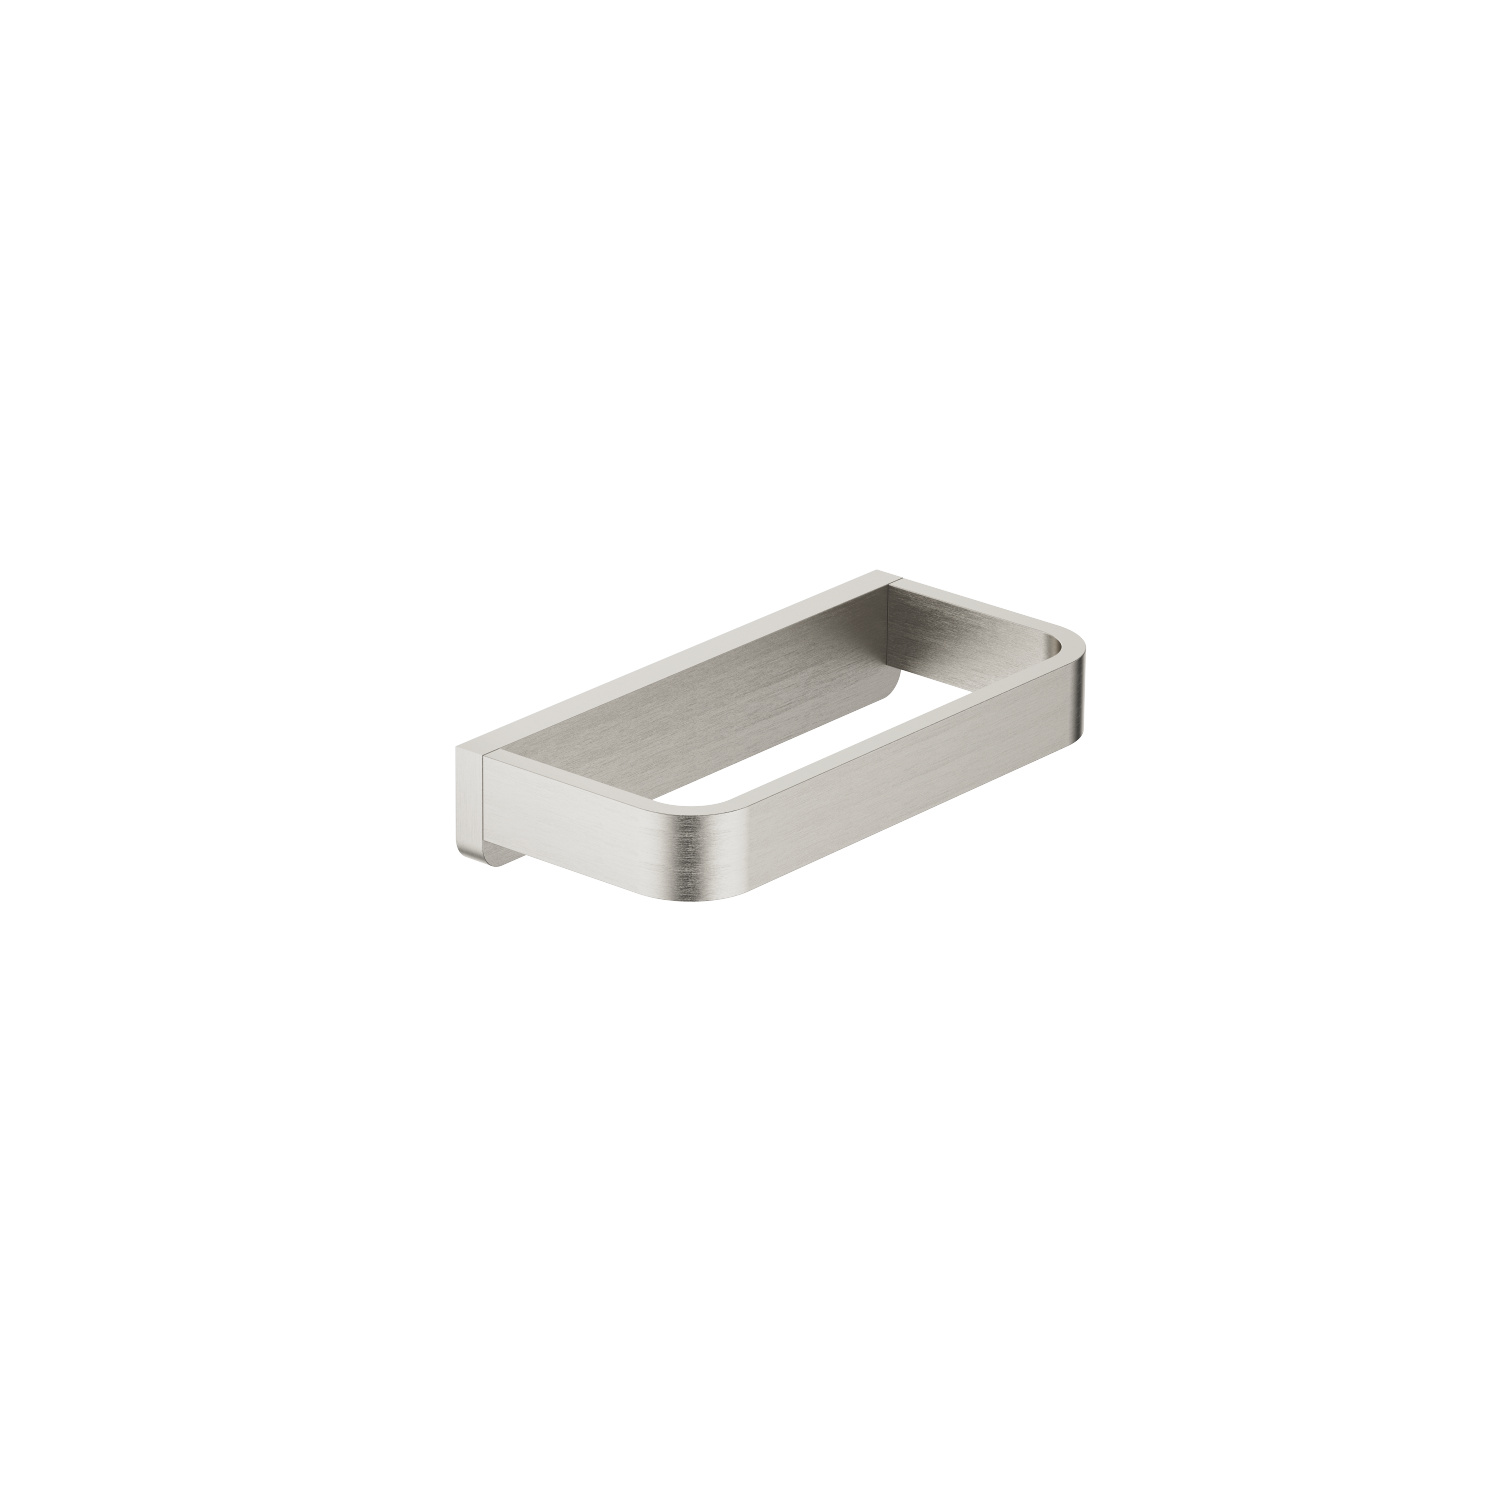 Towel ring  angular - platinum matte